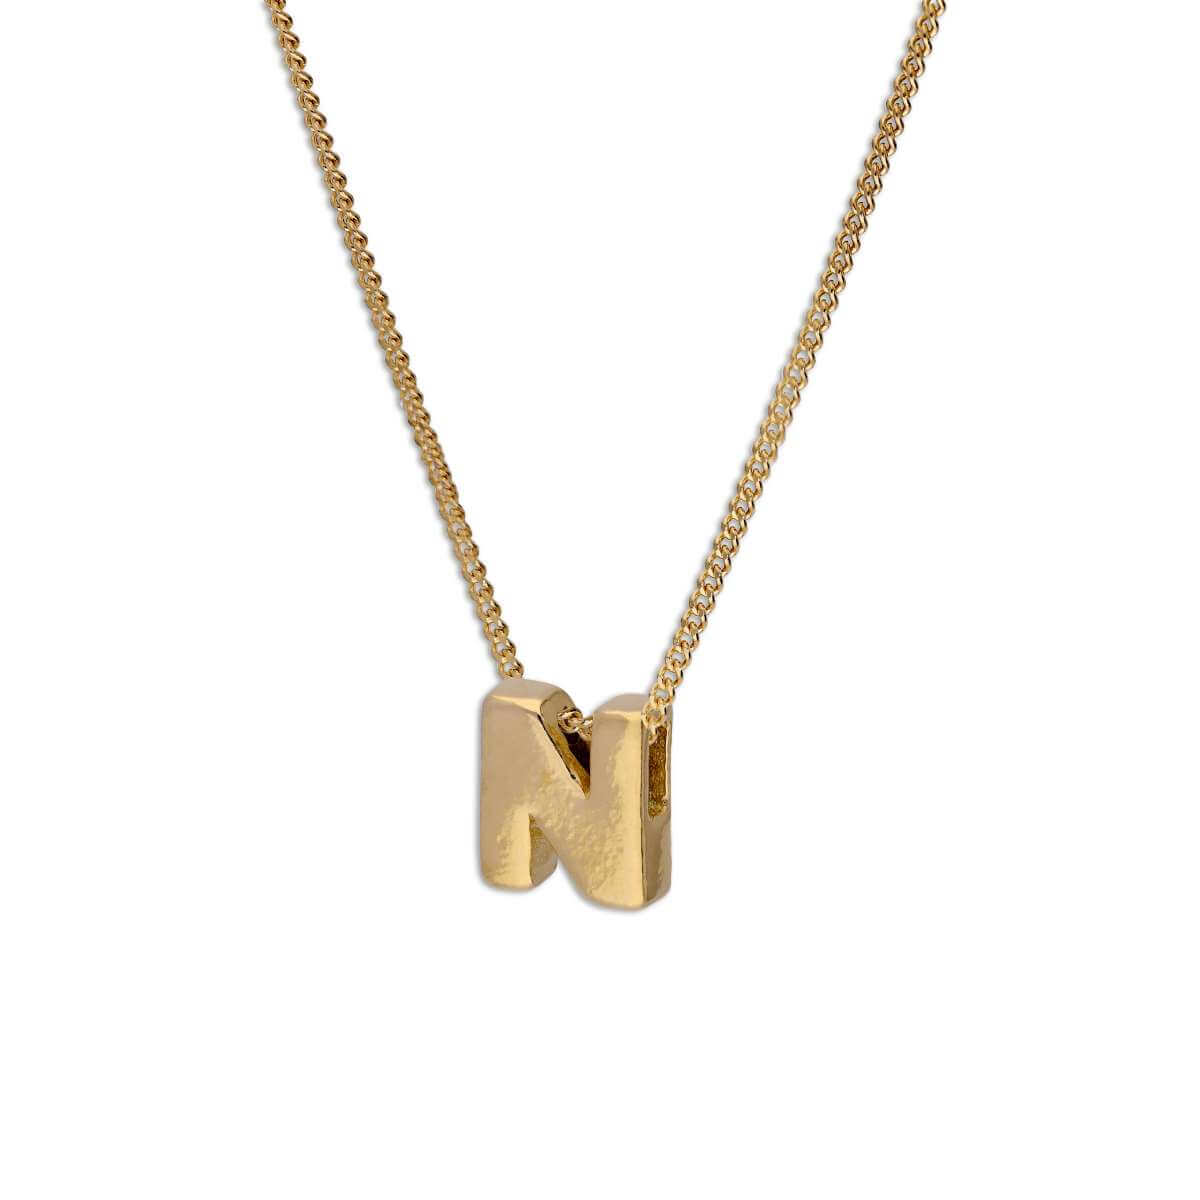 Gold Plated Sterling Silver Threader Letter N Bead Necklace 16 - 22 Inches